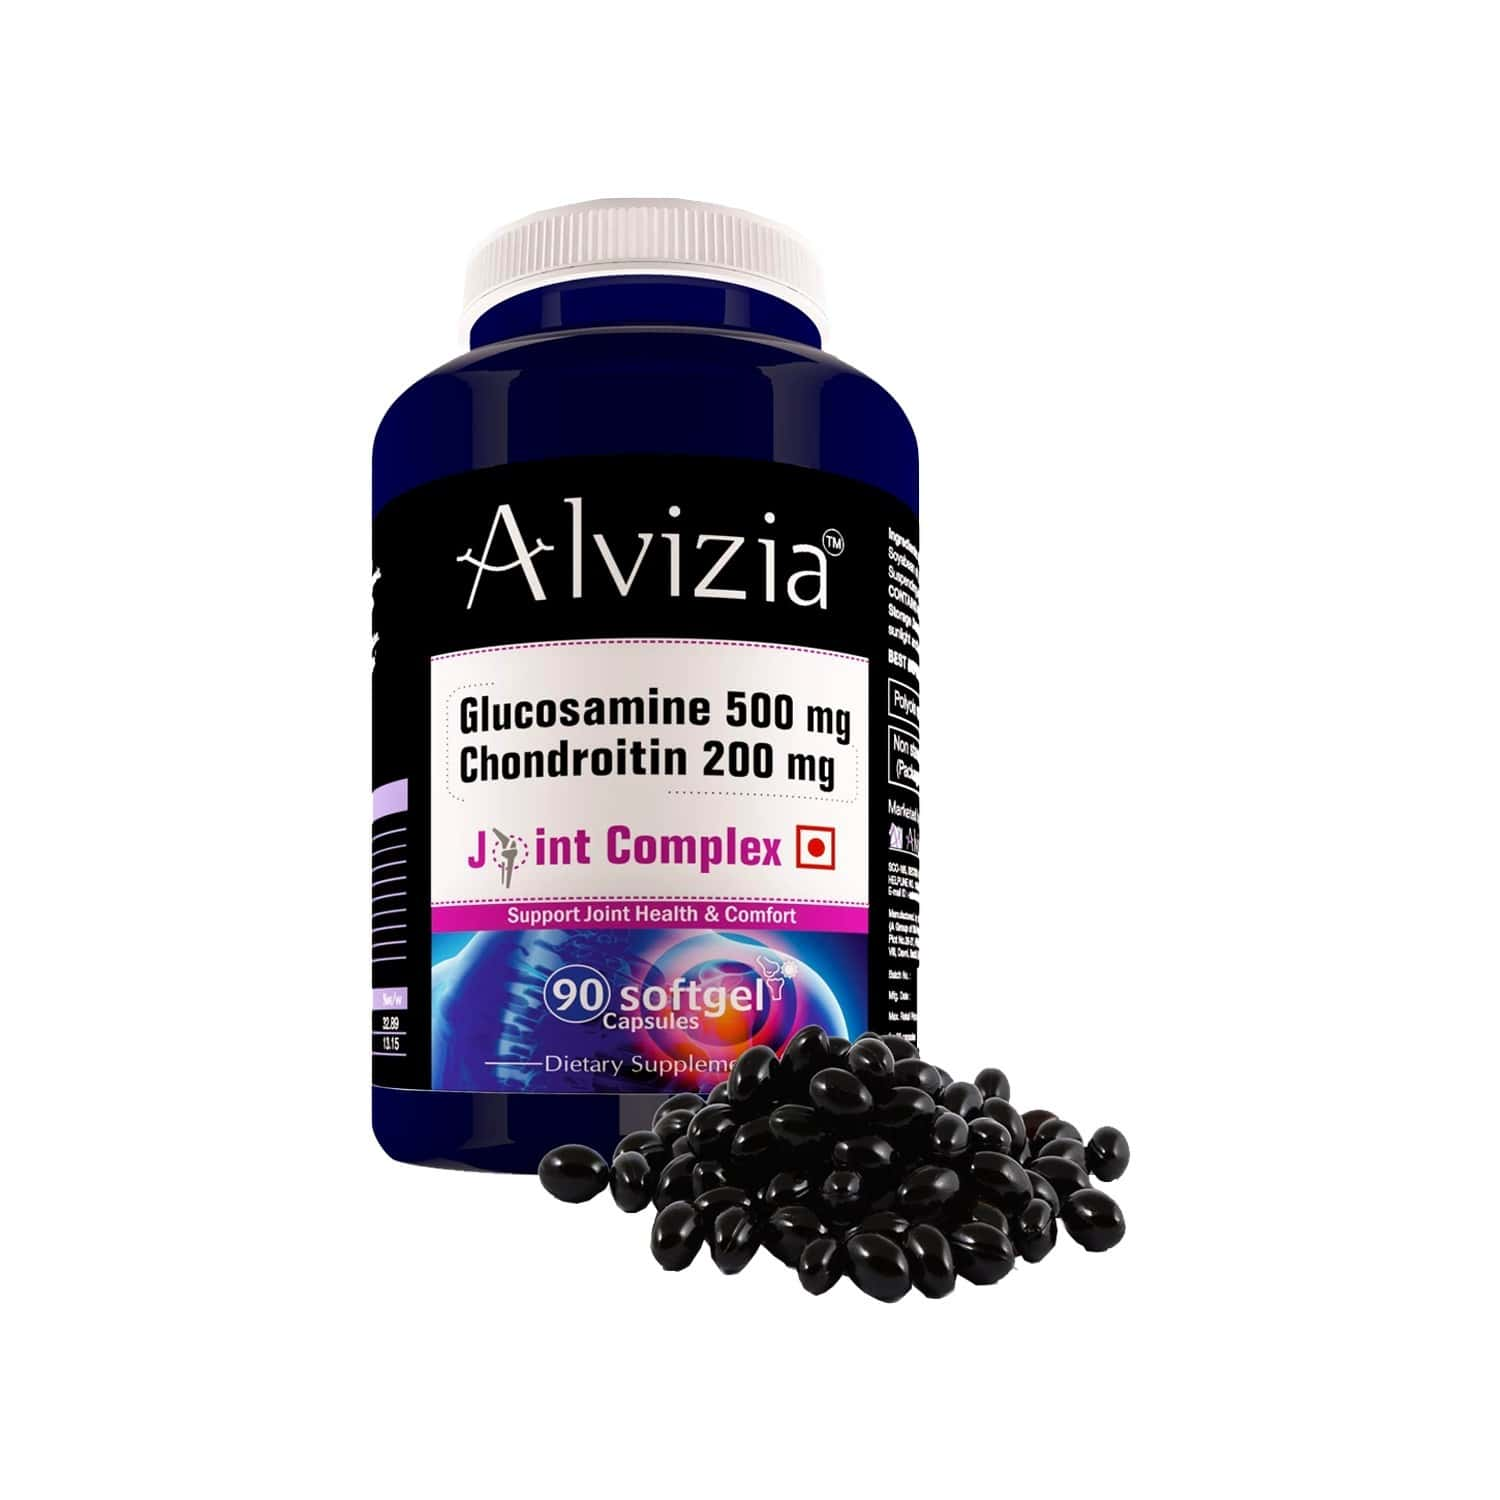 Alvizia Glucosamine 500mg - Chondroitin - 200 Mg Joint Support Capsules Bottle Of 90